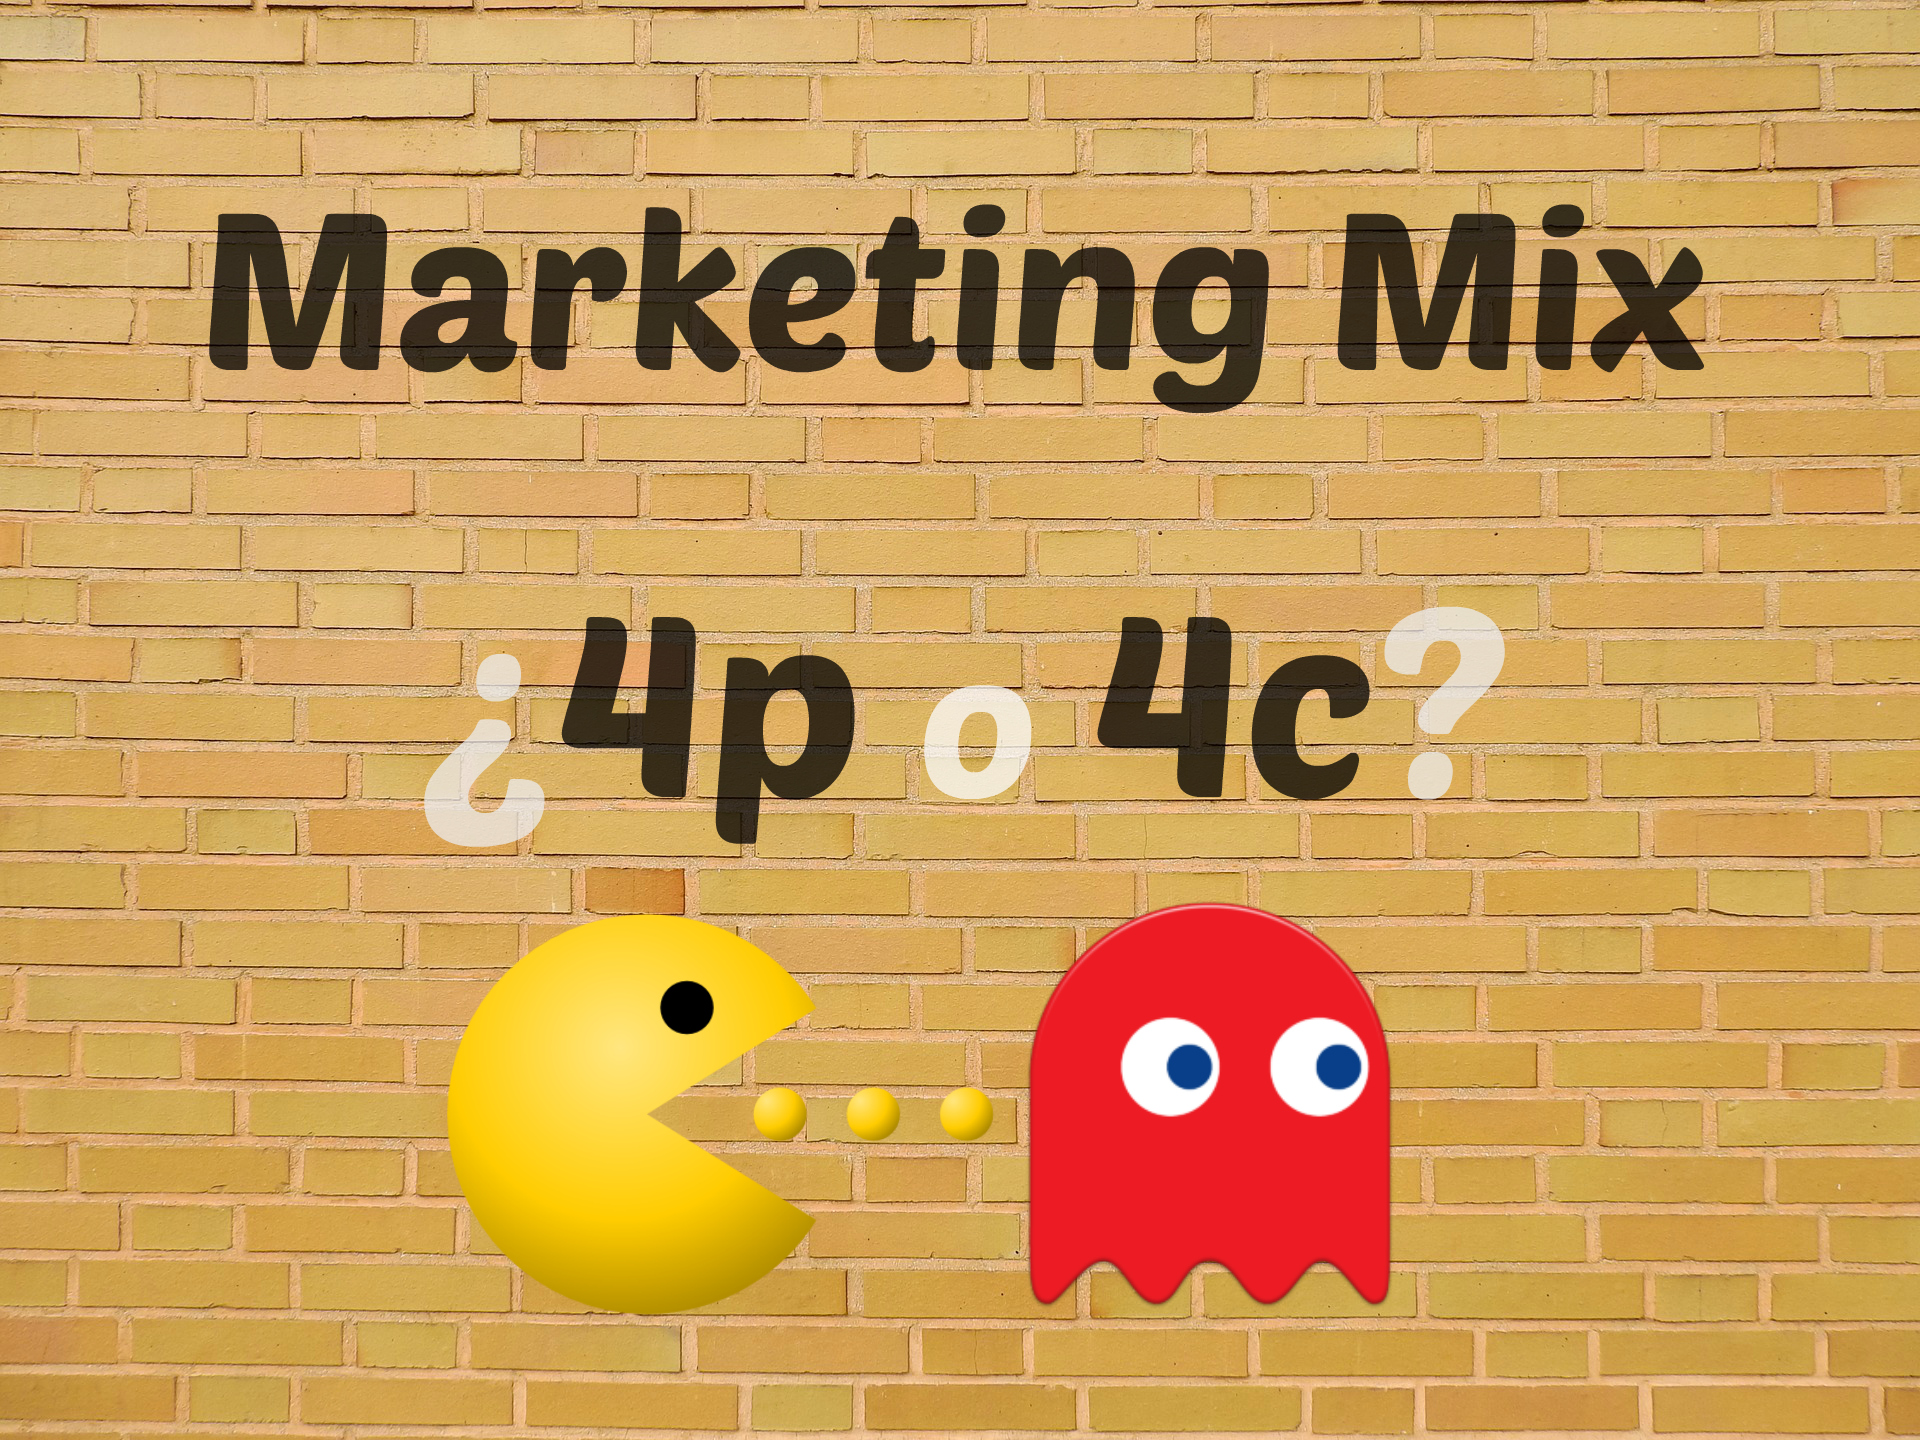 marketingmix4c4p